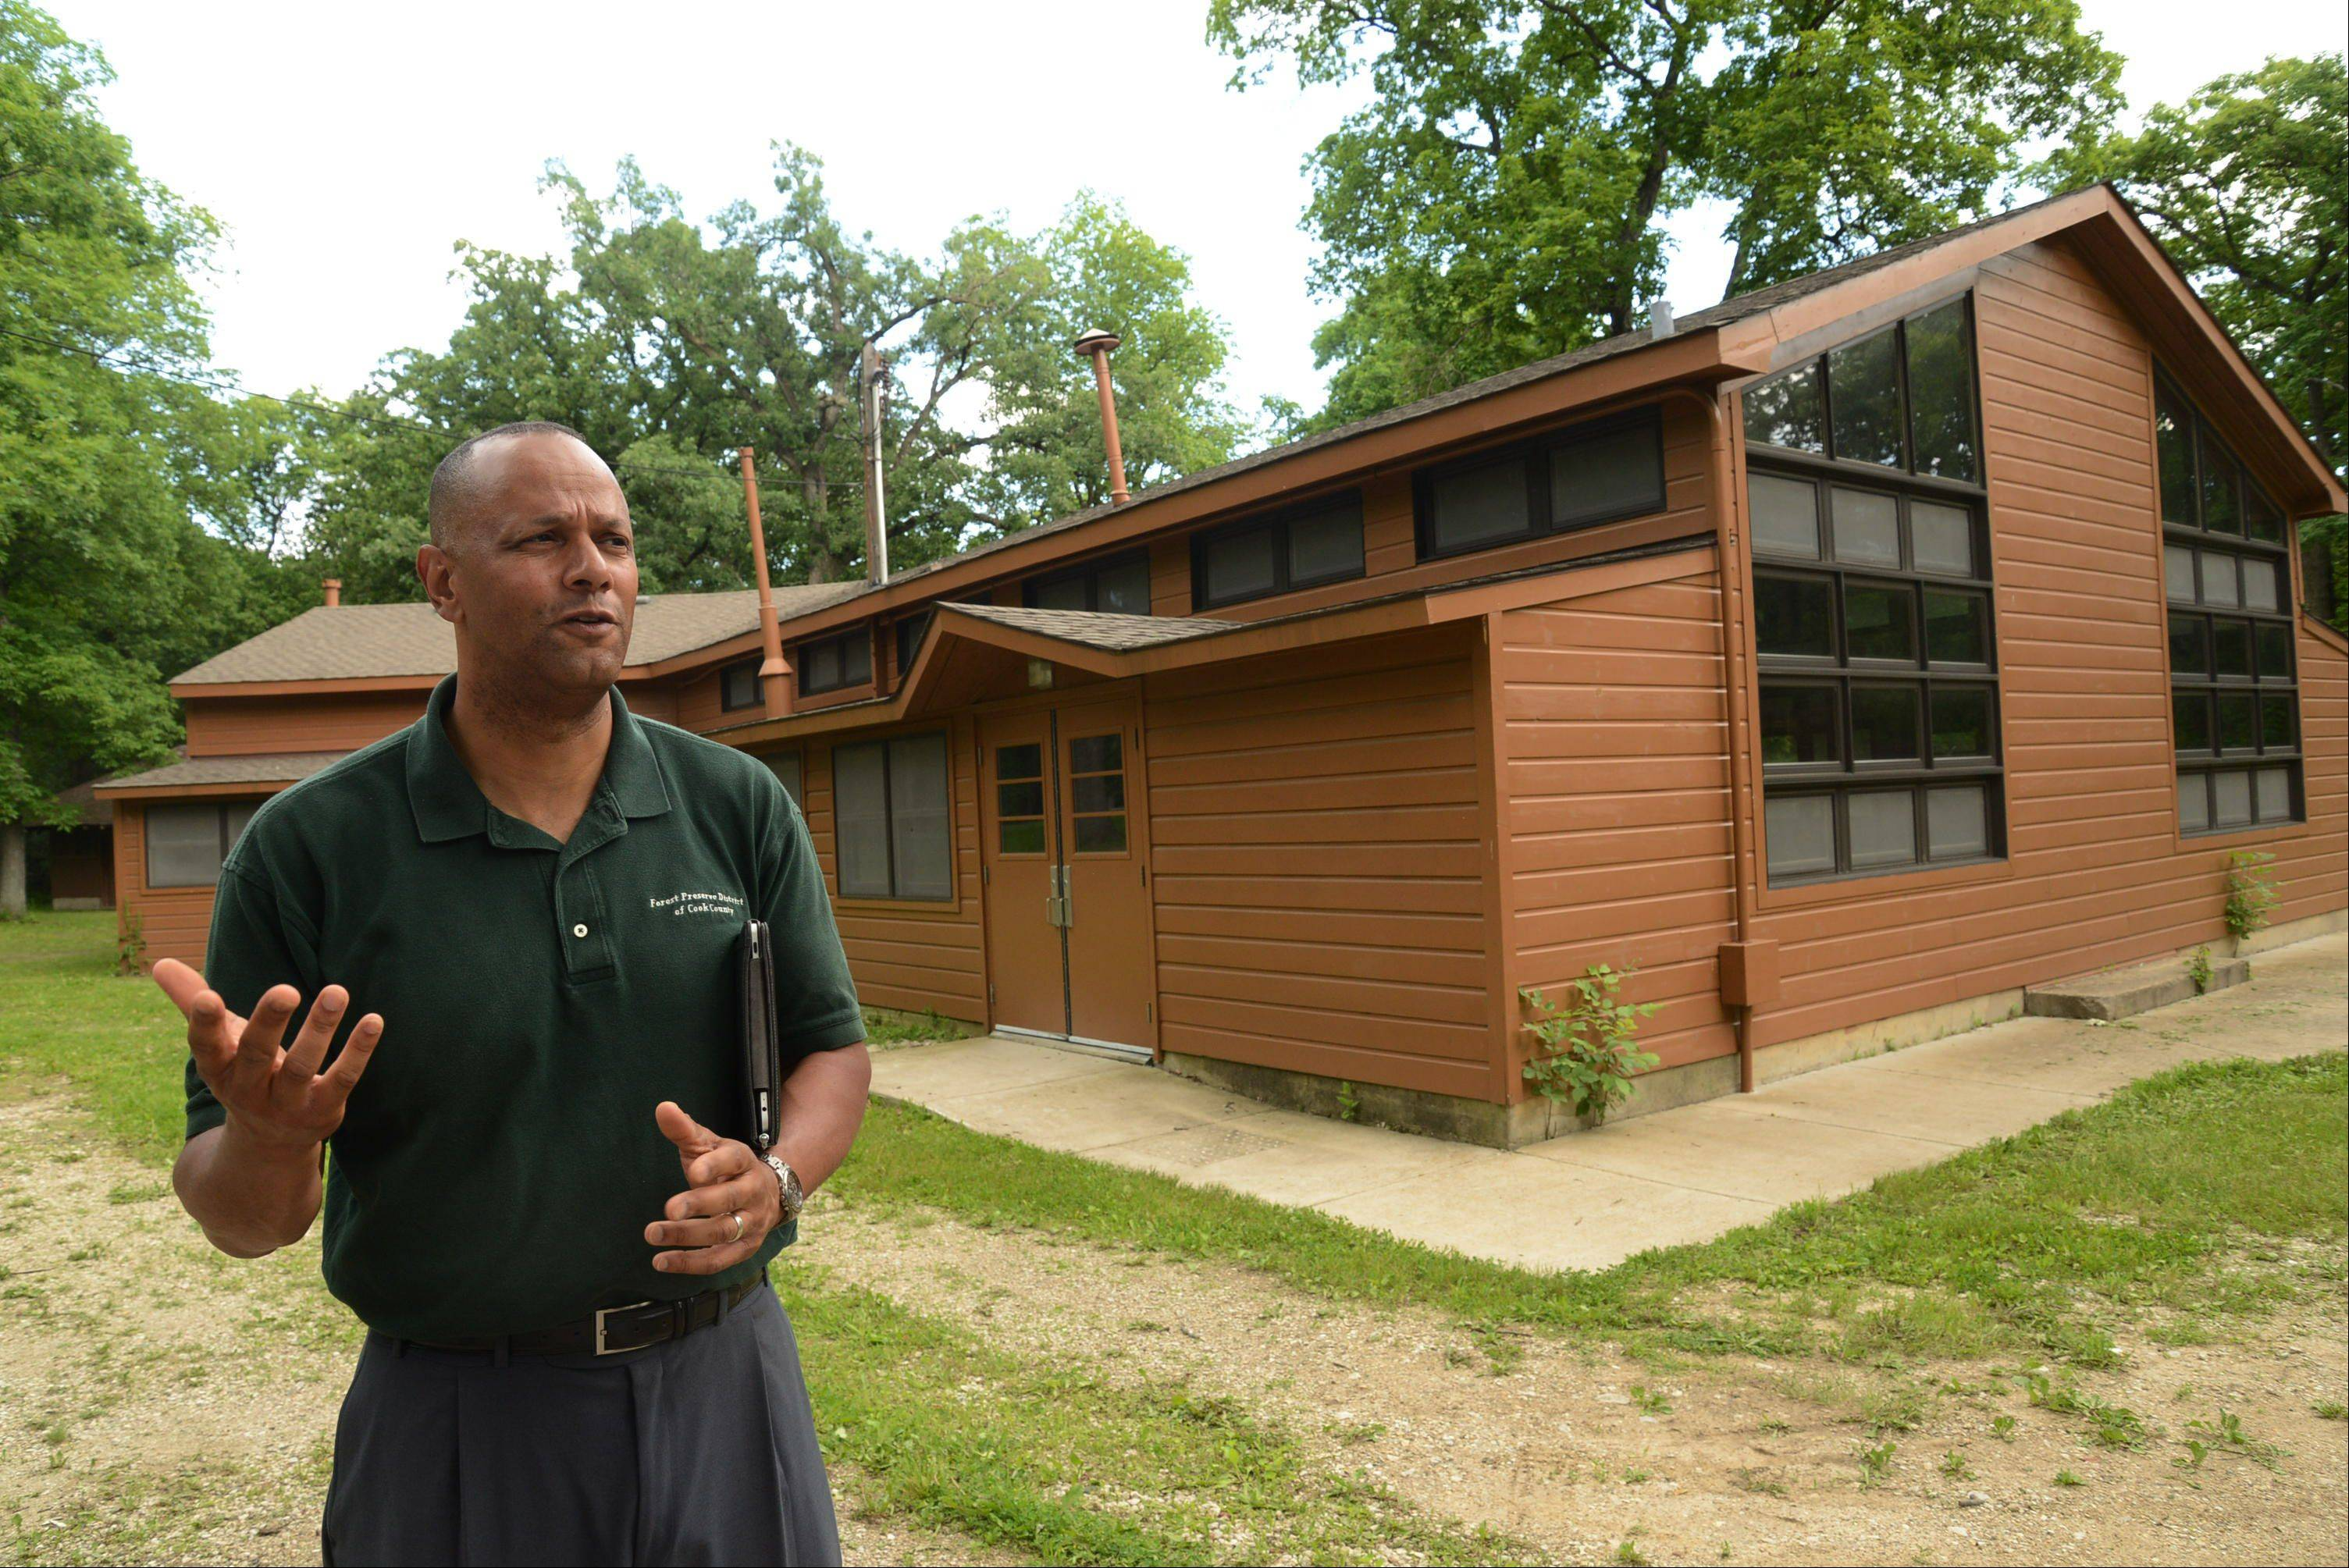 Arnold Randall, superintendent of the Forest Preserve District of Cook County, talks about his vision to improve Camp Reinberg in Palatine and other county forest preserves in the Northwest suburbs.